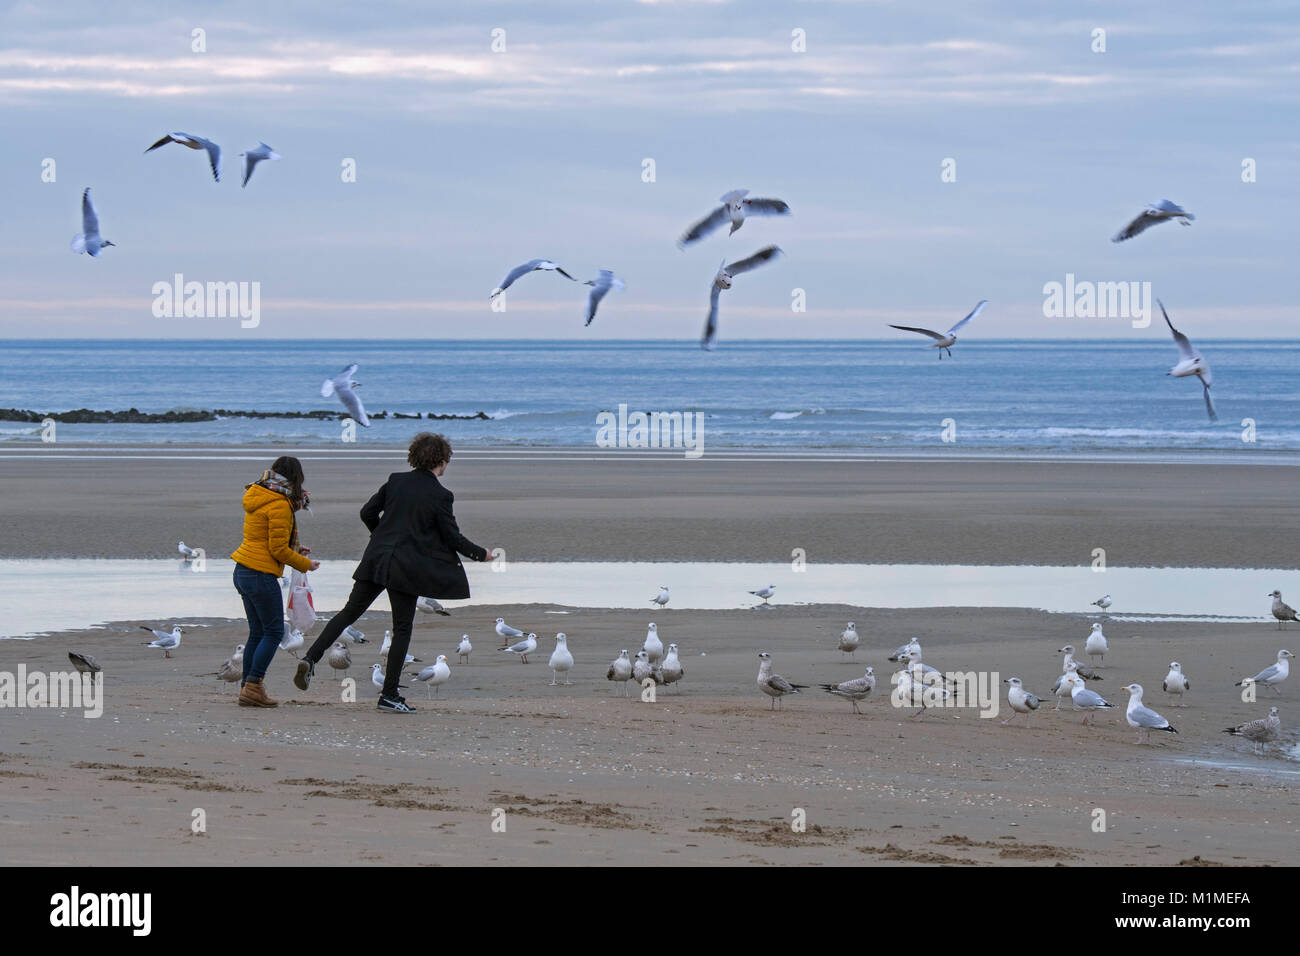 Irresponsible young girl and boy feeding flock of seagulls on beach along the North Sea coast in winter - Stock Image